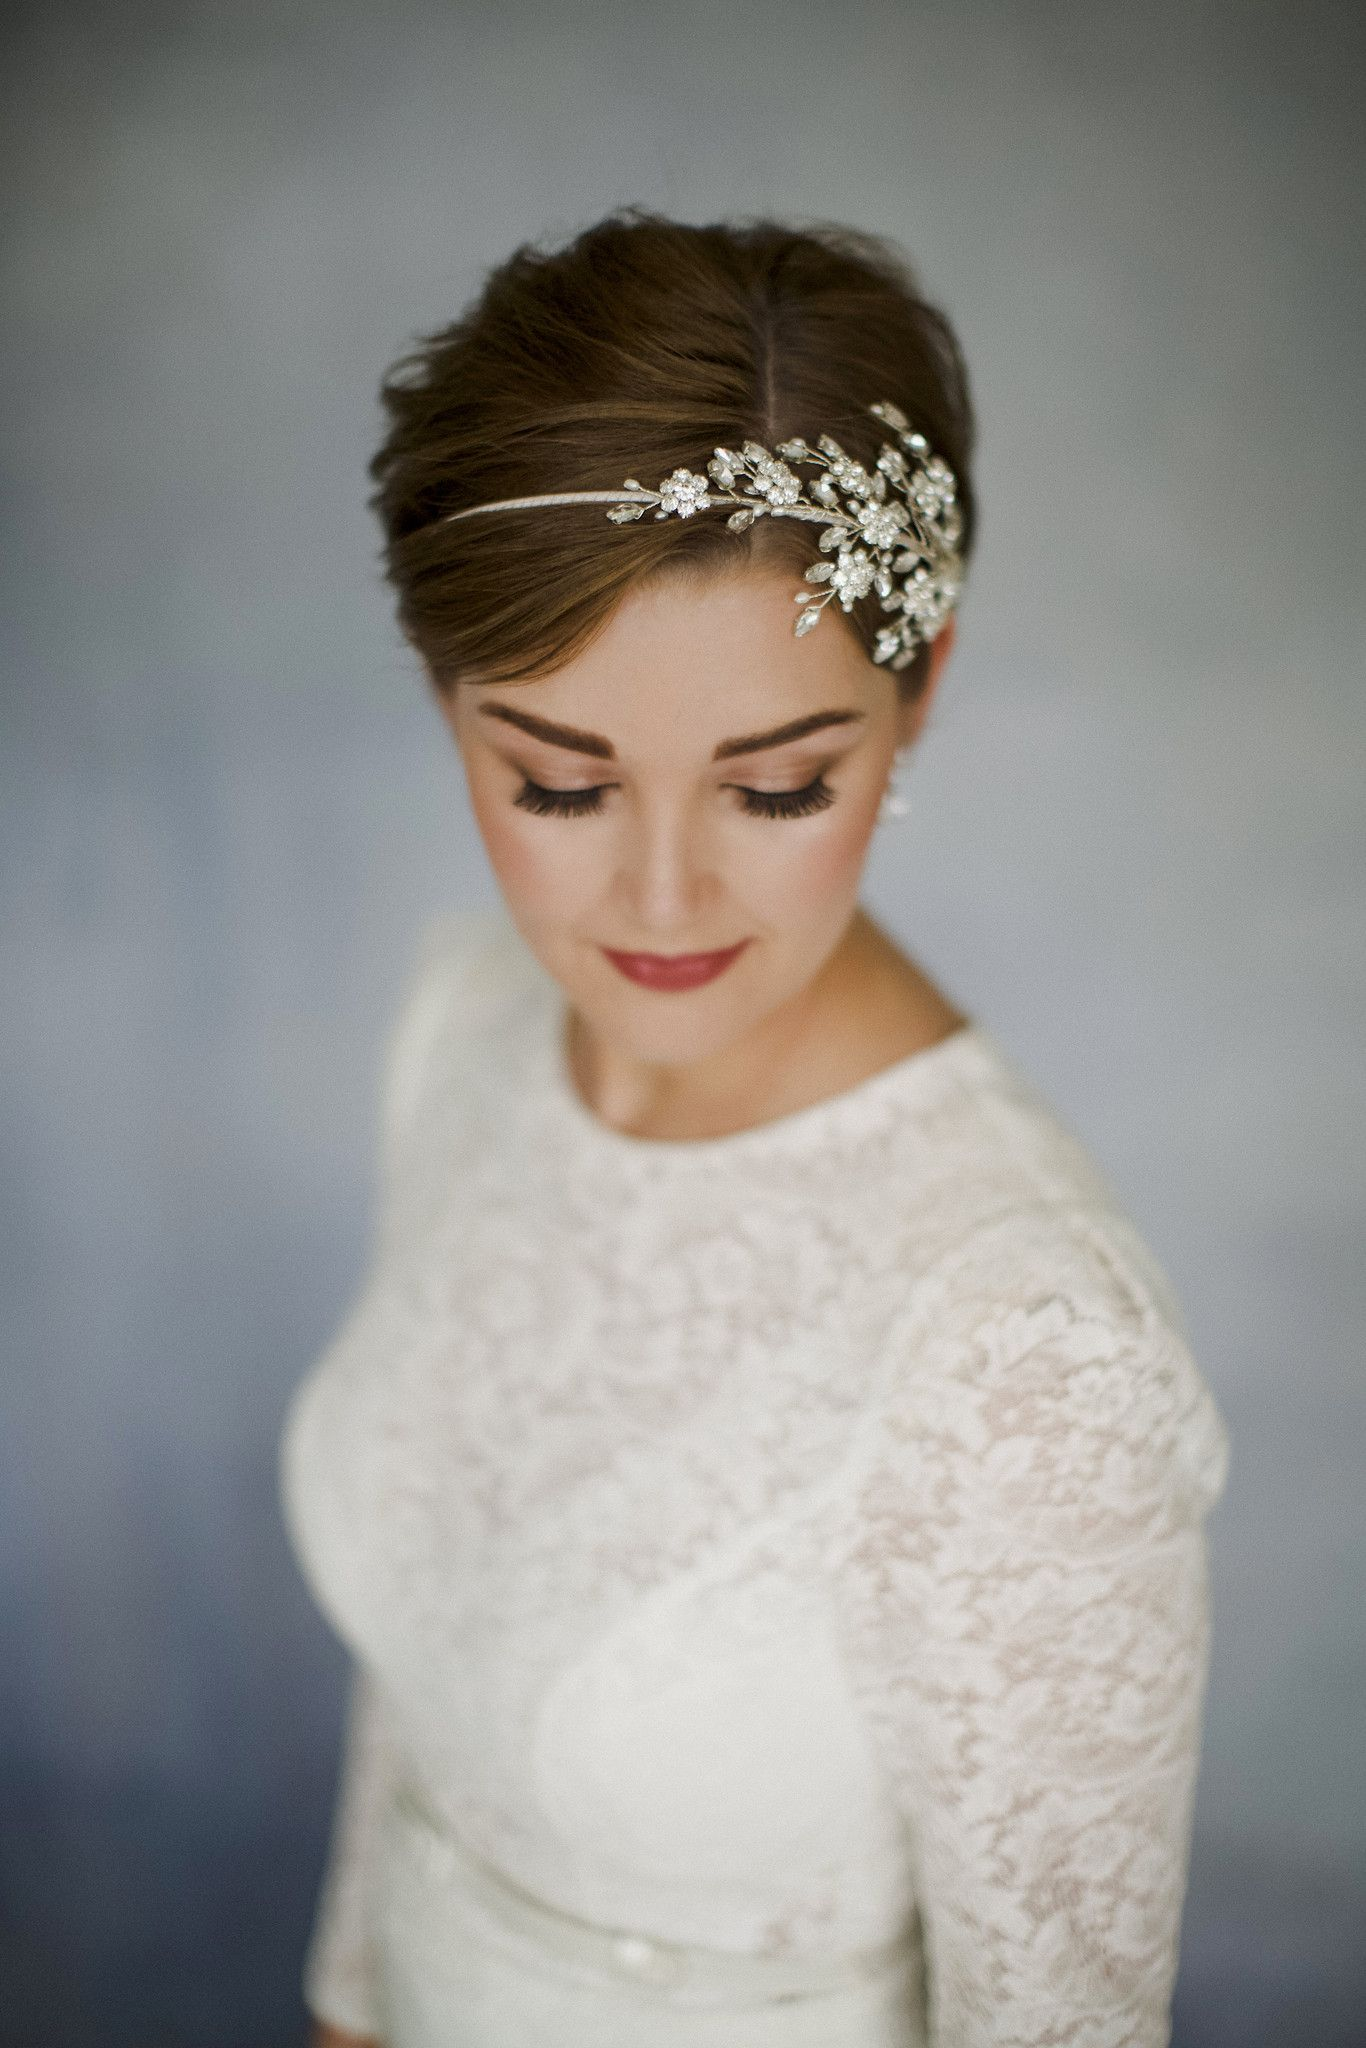 large statement swarovski crystal wedding headband - etta